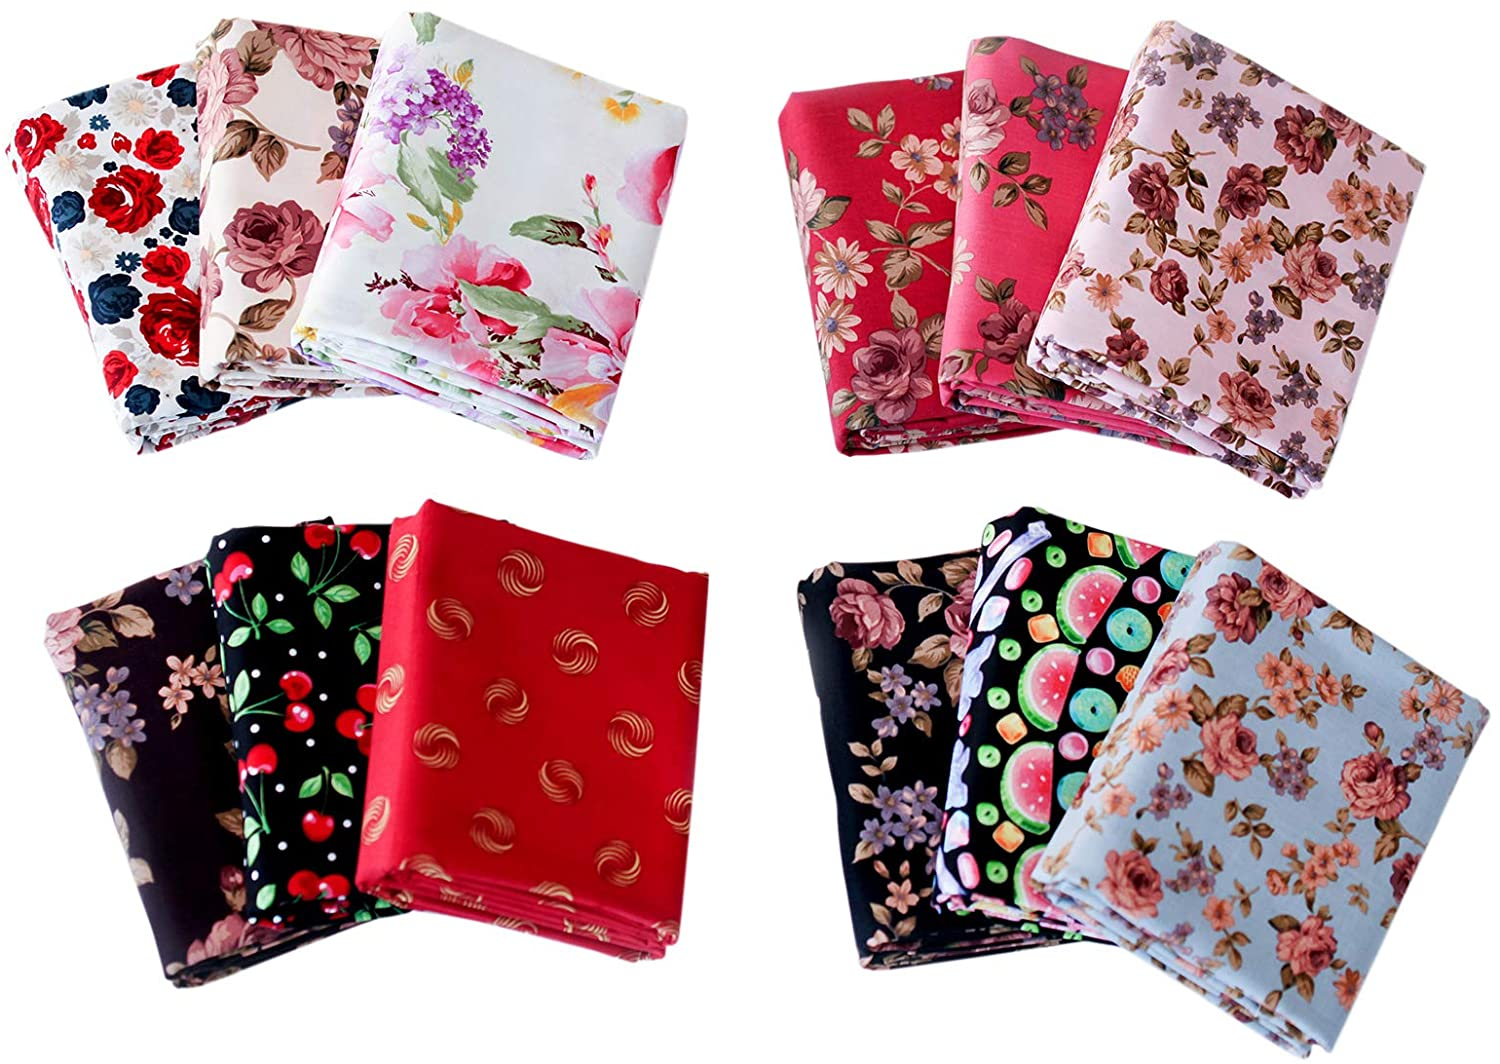 12 Pcs Cotton Craft Fabric Bundle Quilting Fabric with Different Patterns Fabric Patchwork Craft Cotton Quilting Fabric for Sewing Quilting Patchwork Craft Scrapbooking